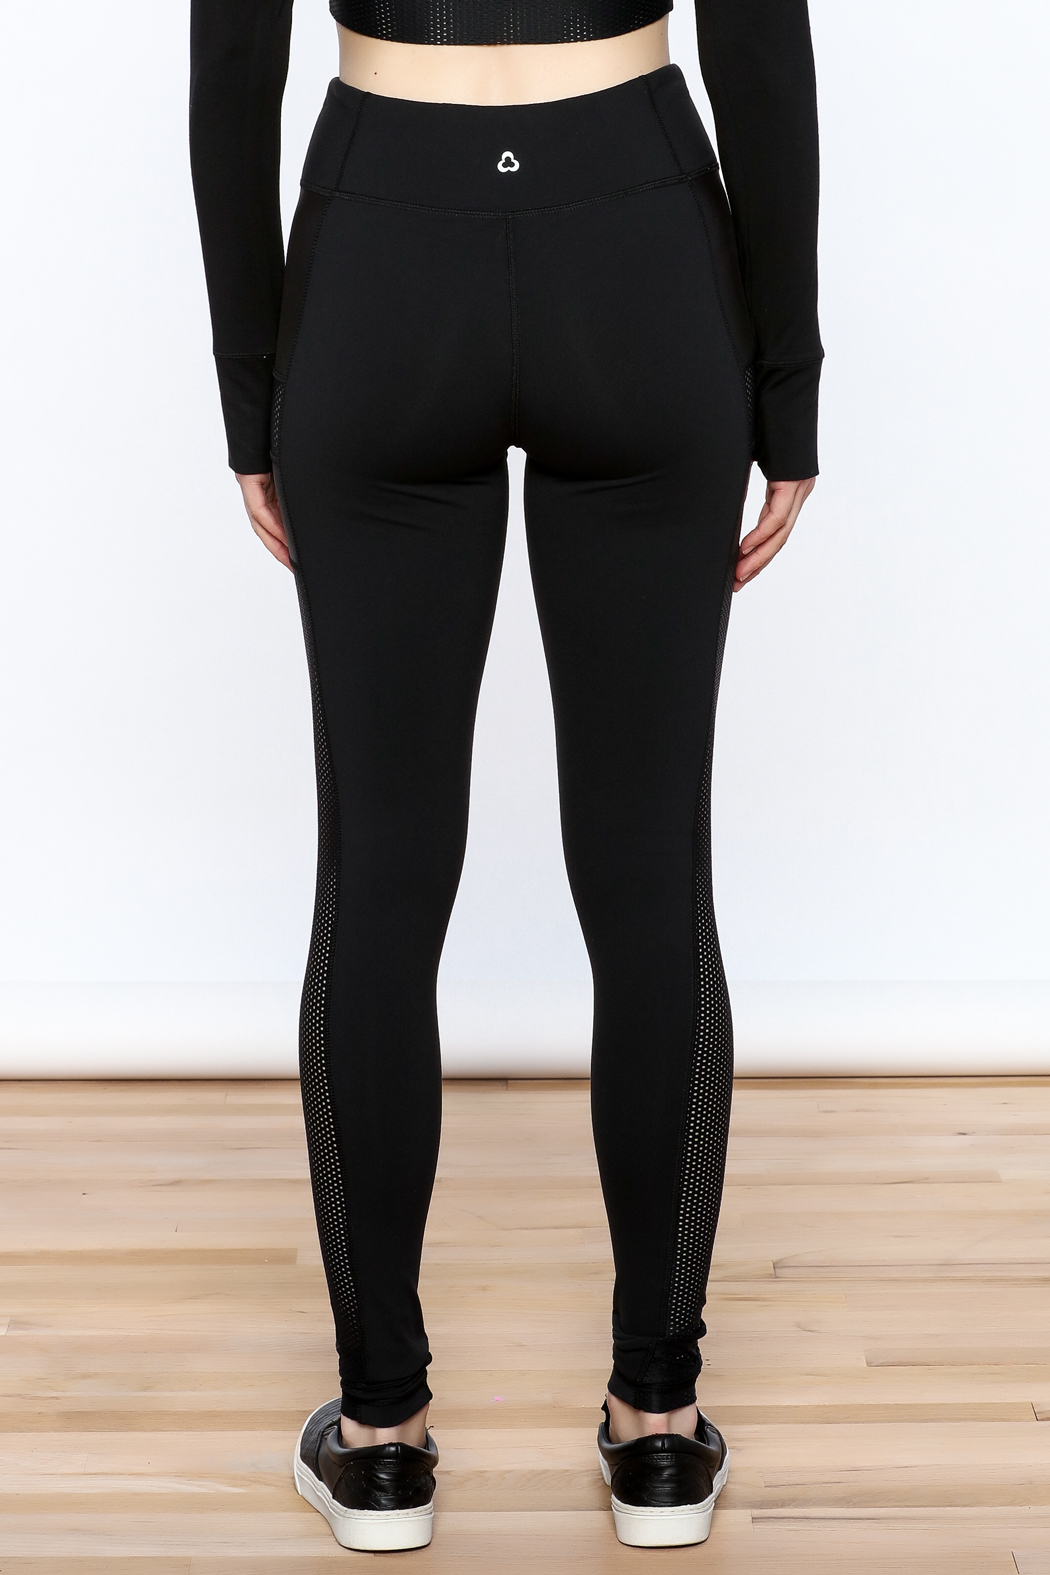 Titika Active Couture Dipsi Mesh Leggings - Back Cropped Image